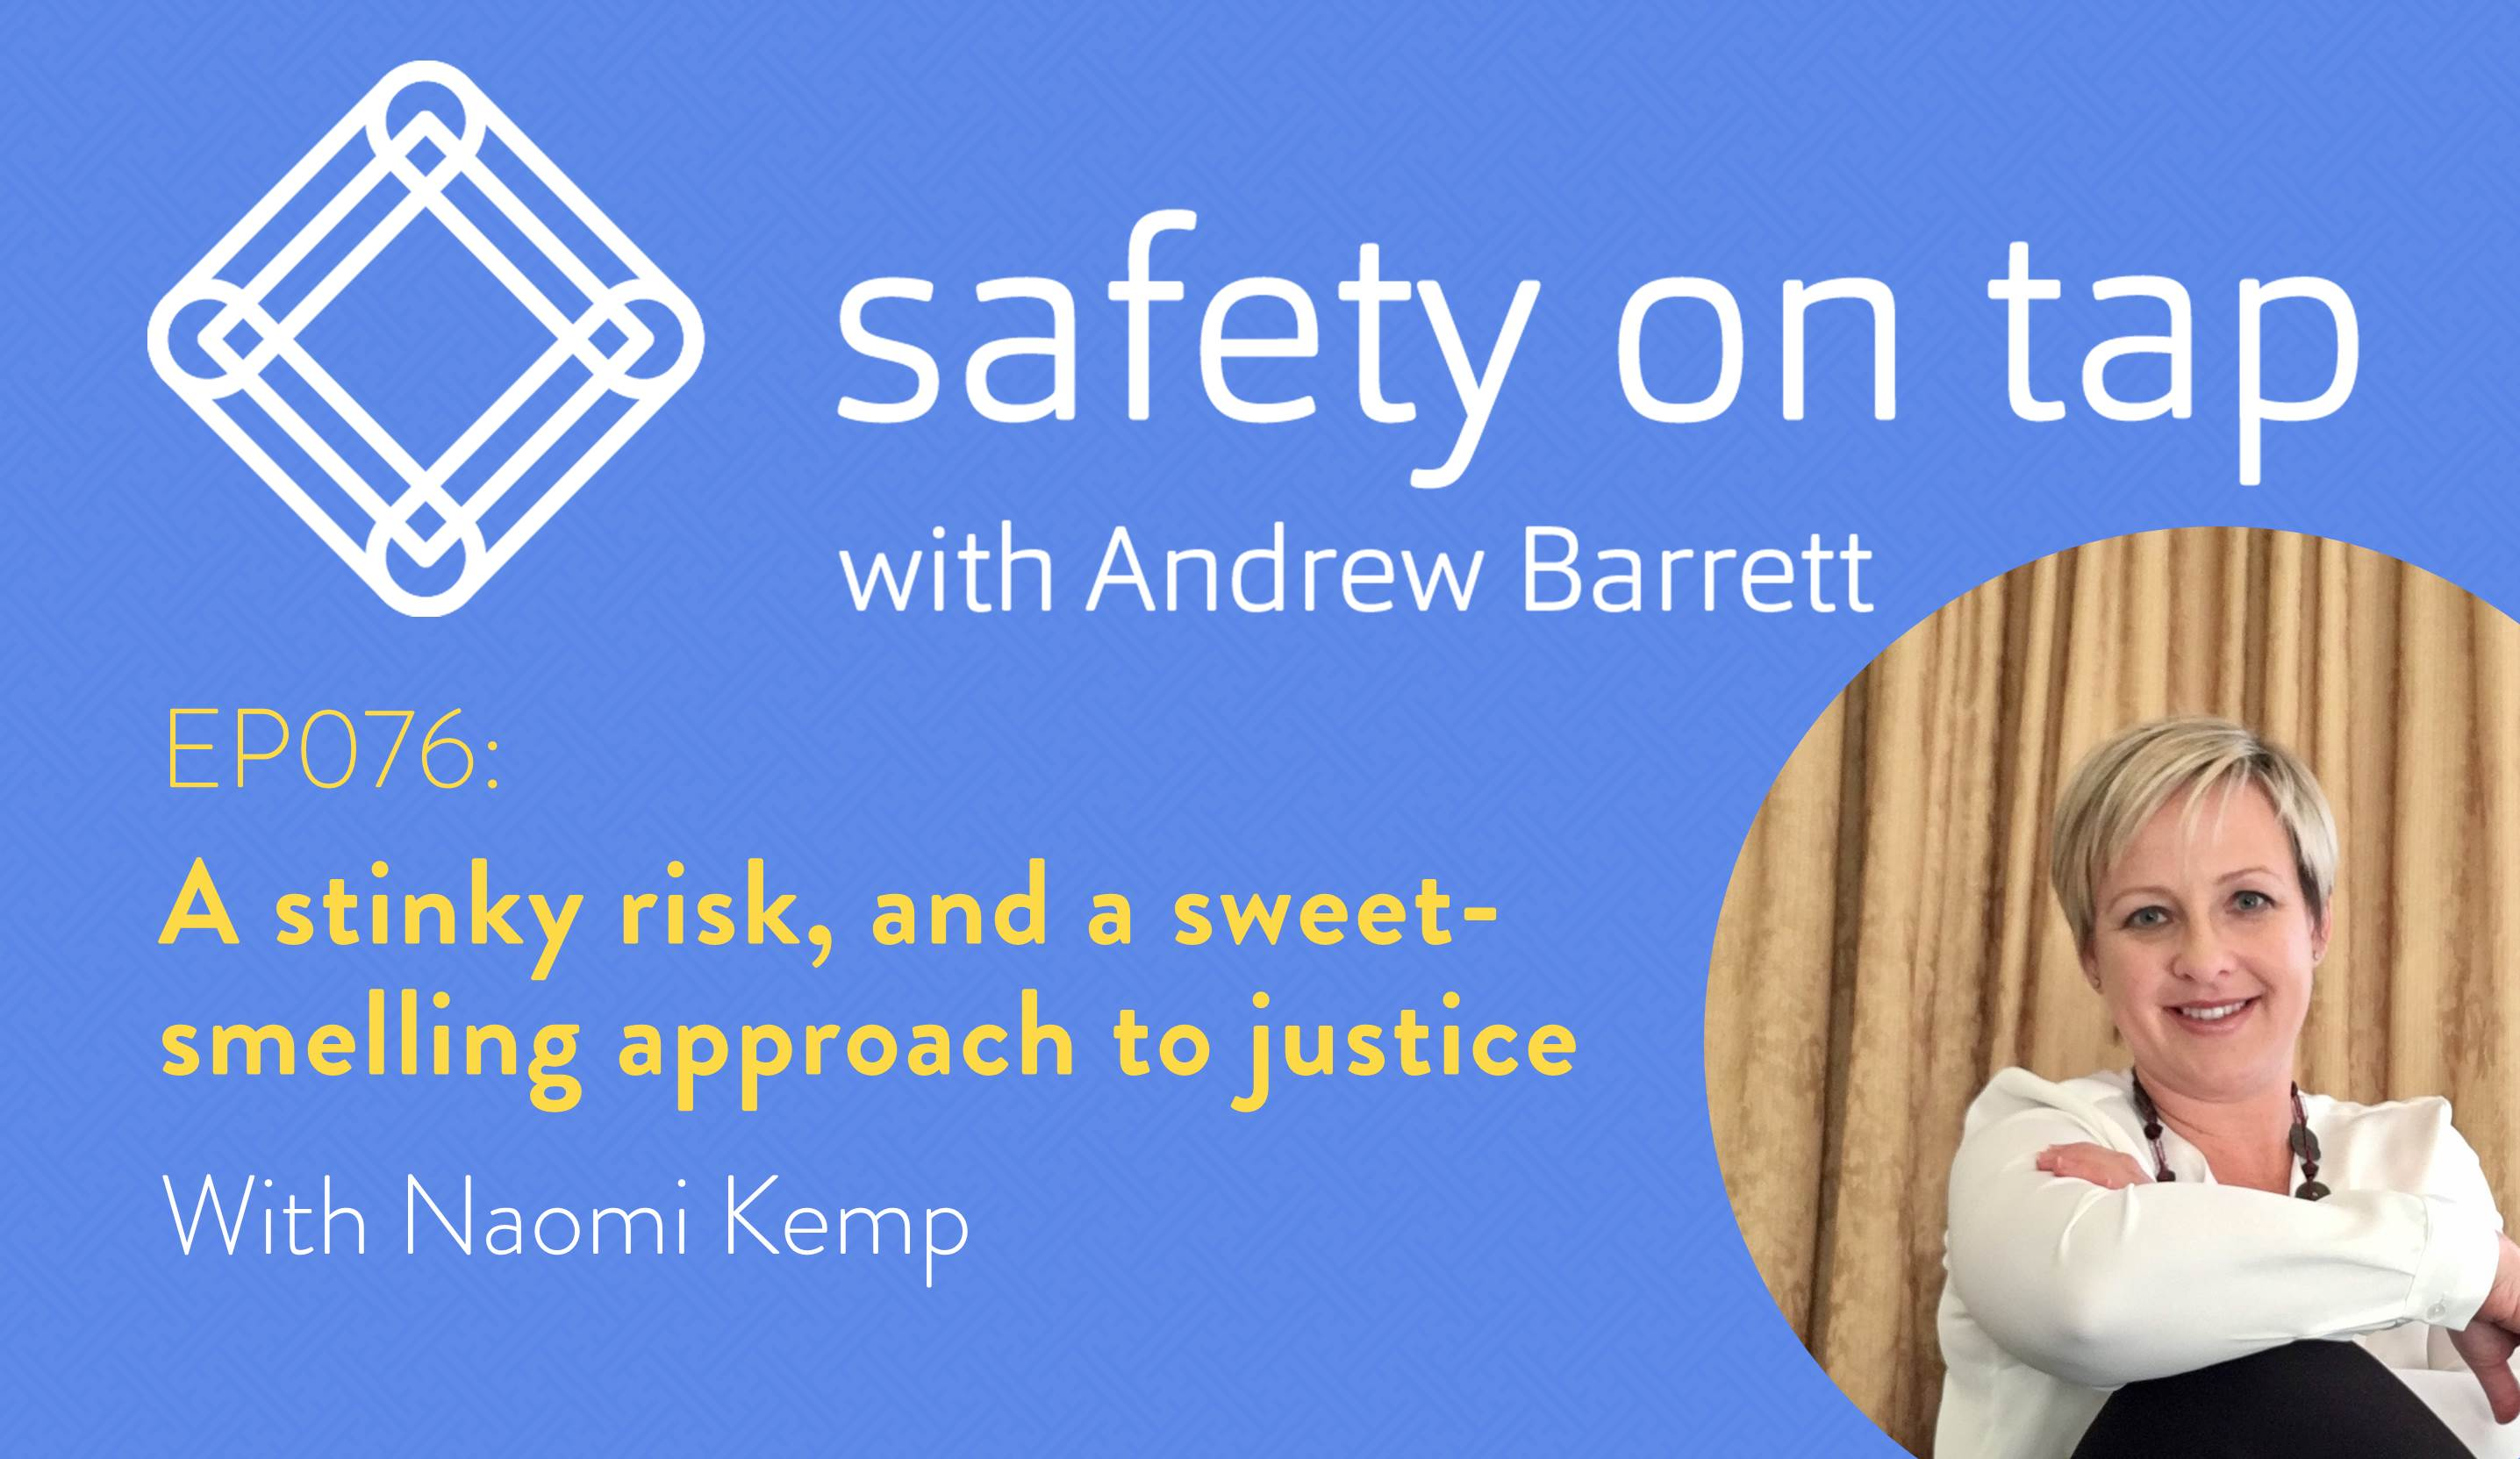 Ep076: A stinky risk, and a sweet-smelling approach to justice, with Naomi Kemp